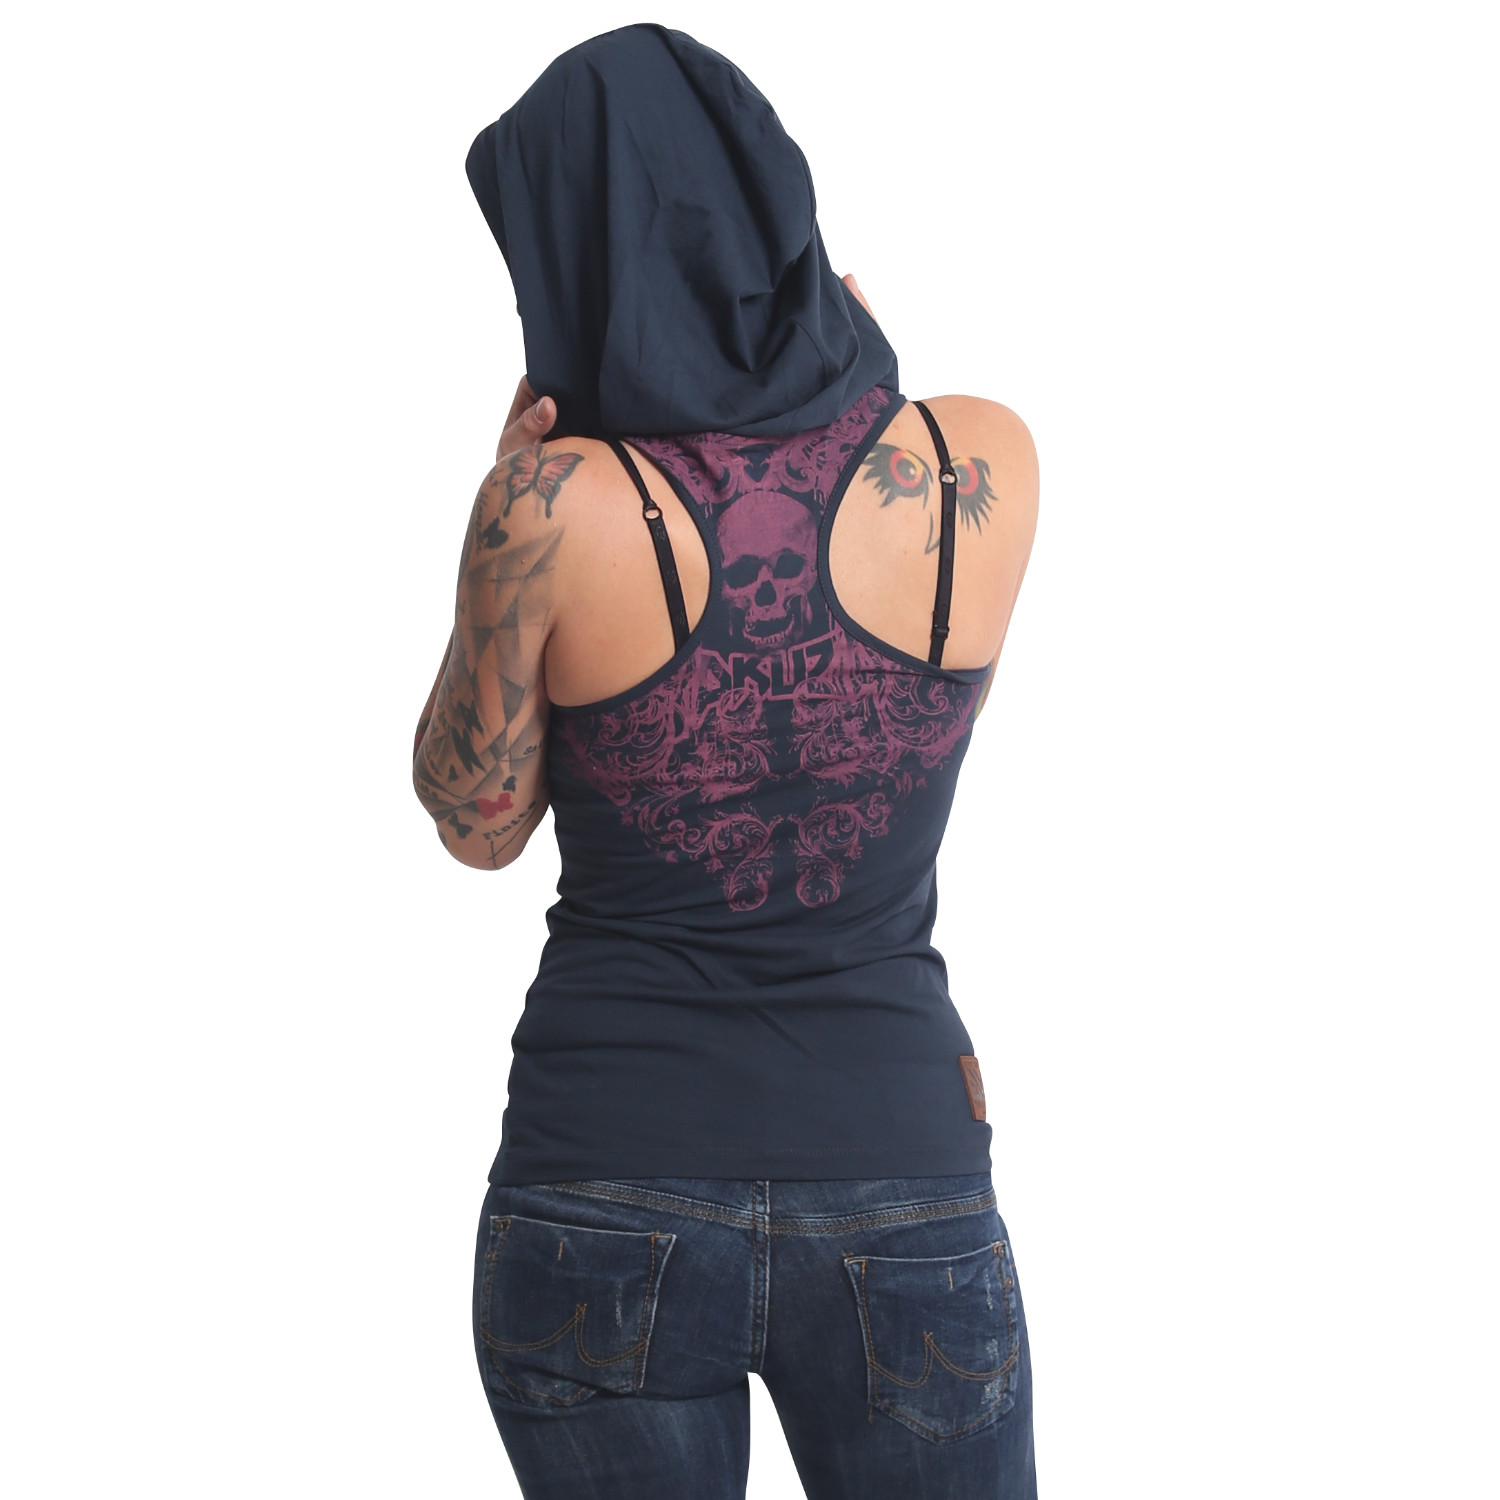 Dark Tribe Hooded Tank Shirt